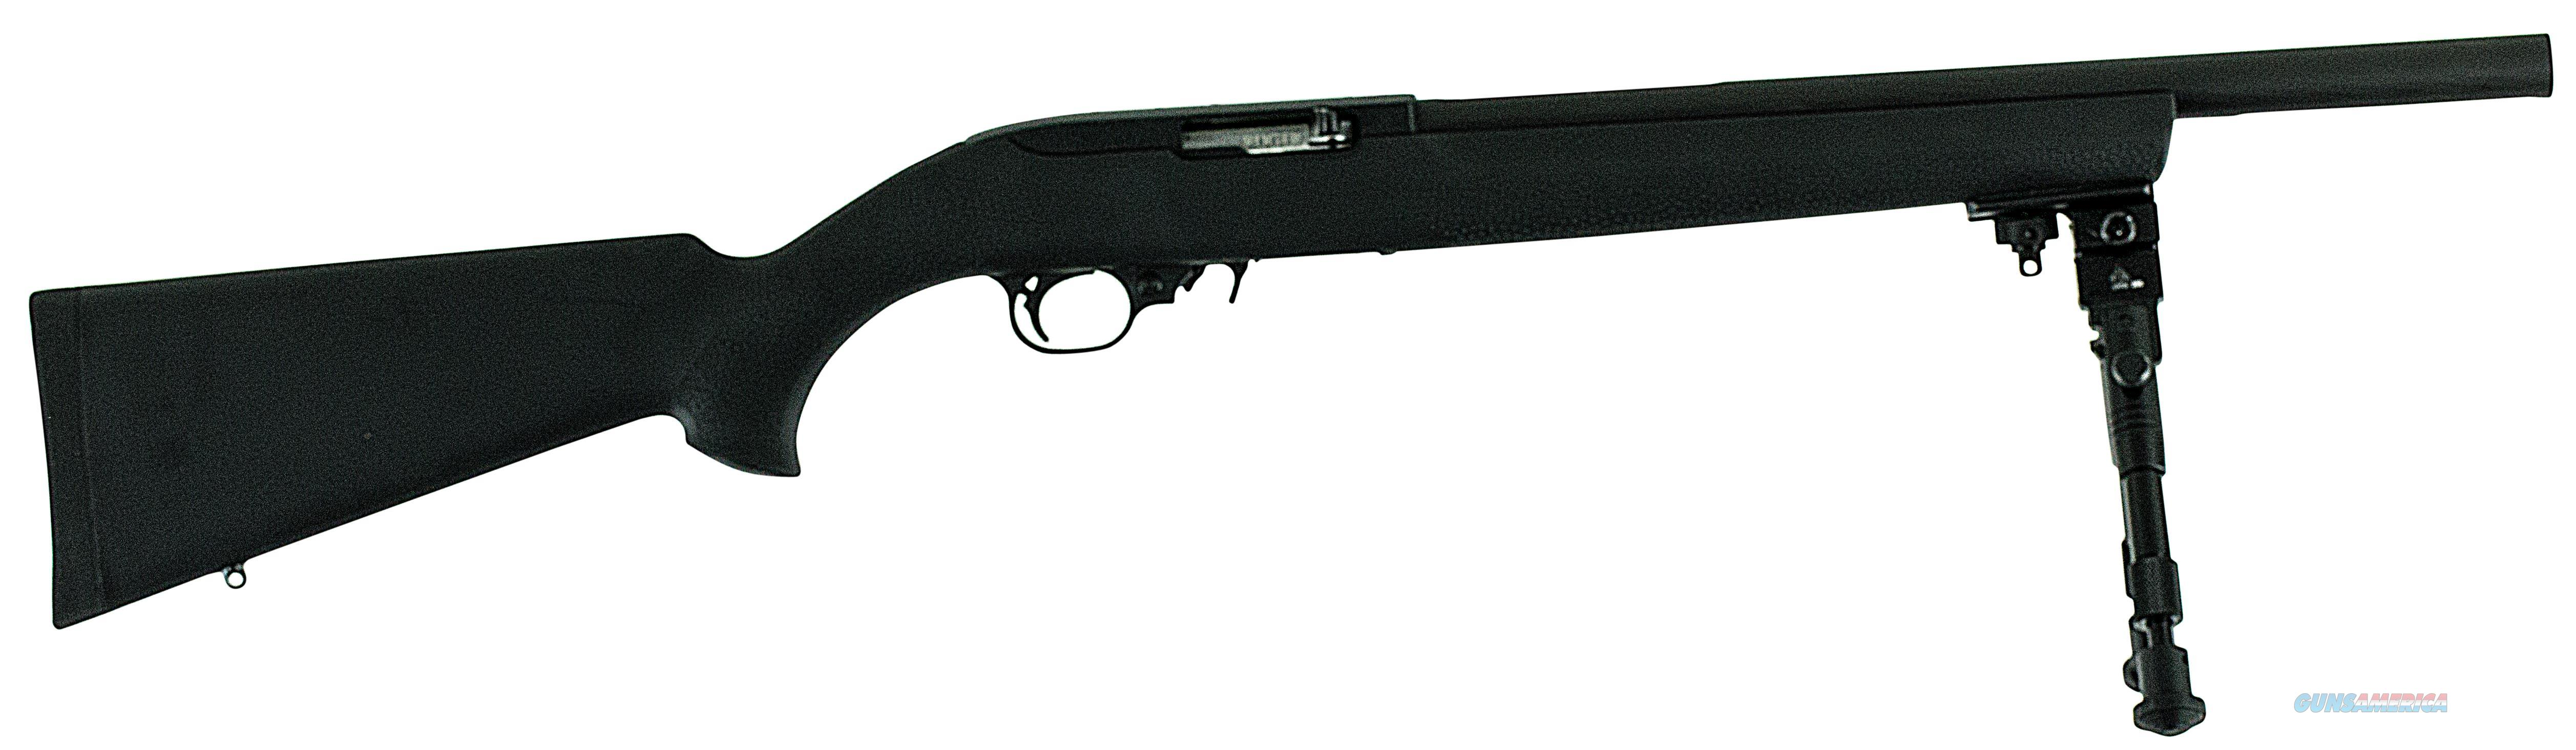 "RUGER 10/22VLEH 16"" HOGUE BLK 1230  Guns > Rifles > Ruger Rifles > 10-22"